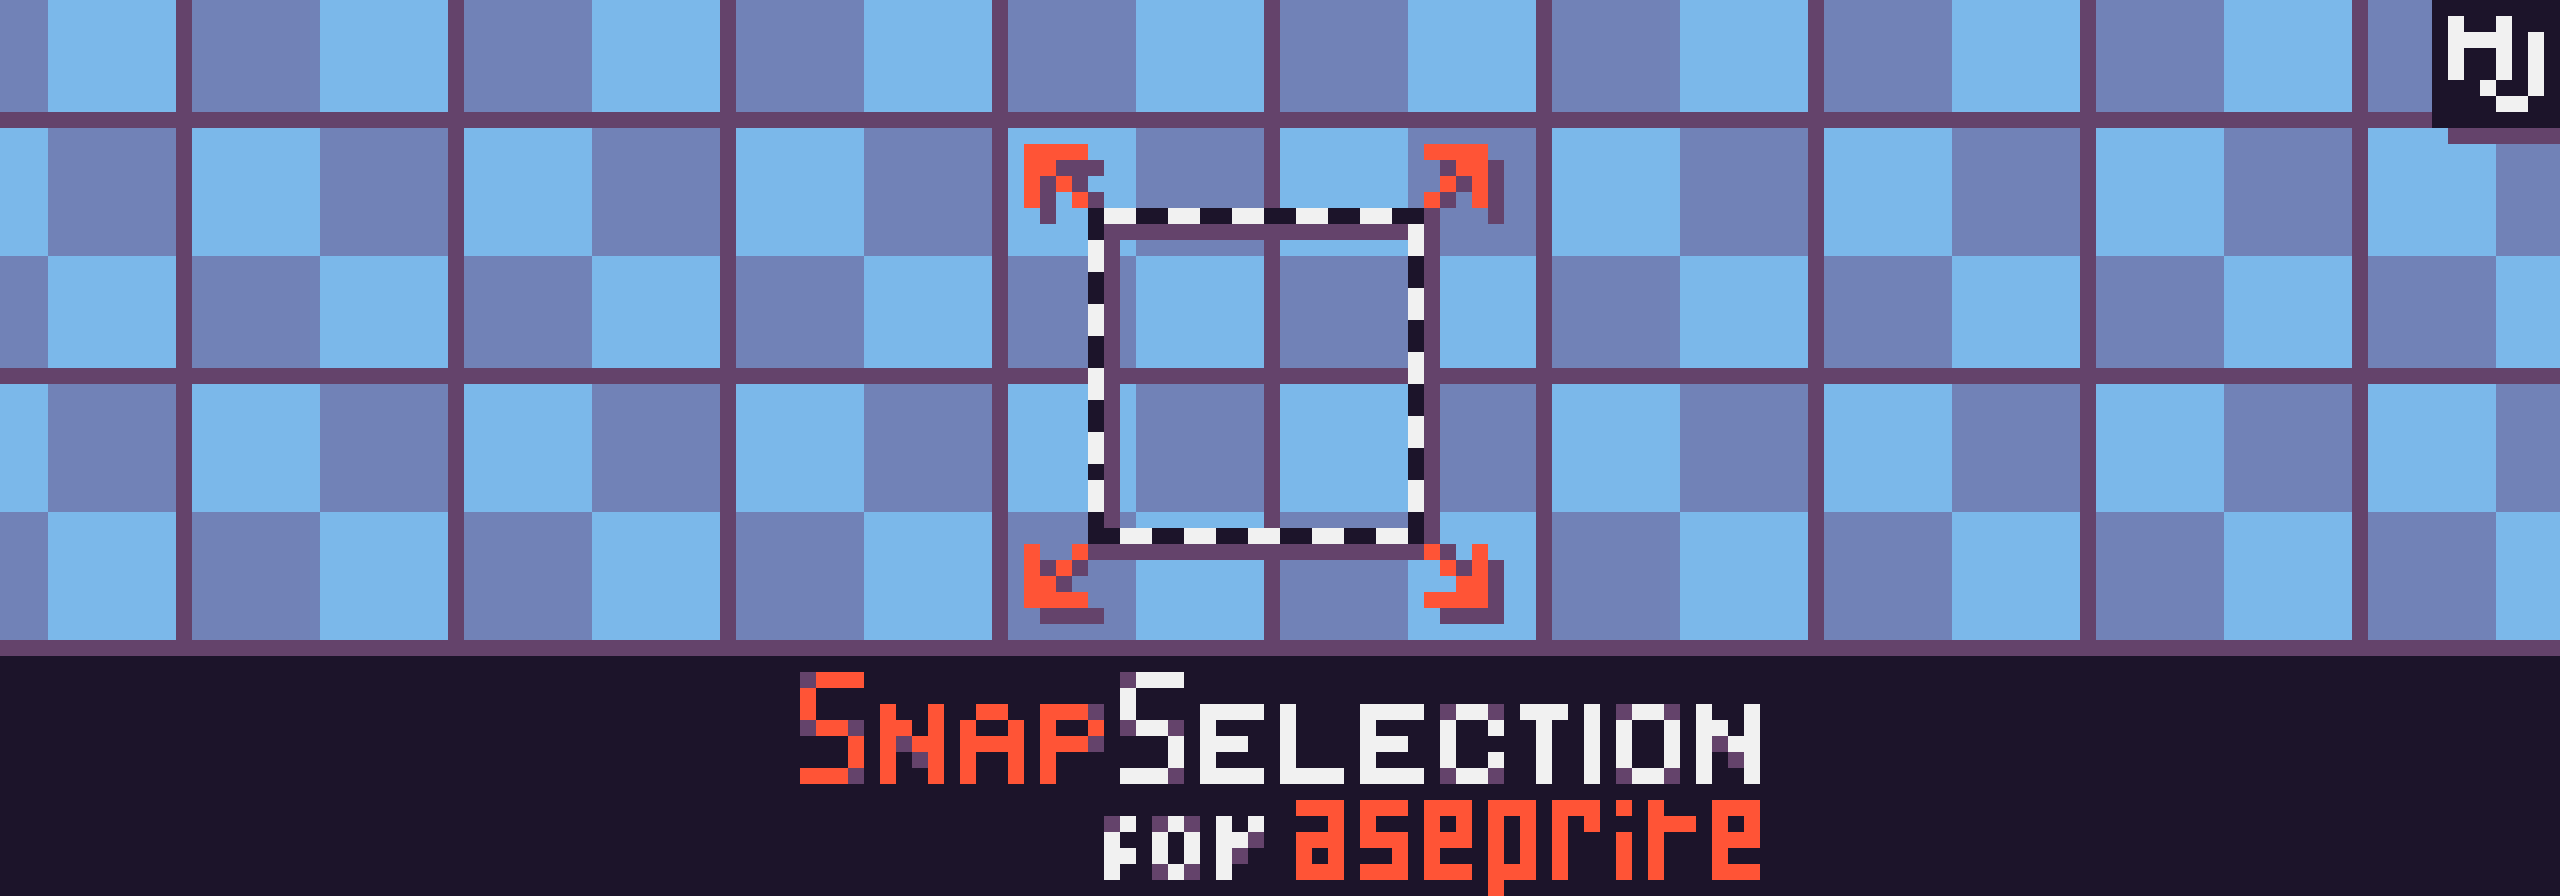 SnapSelection for Aseprite